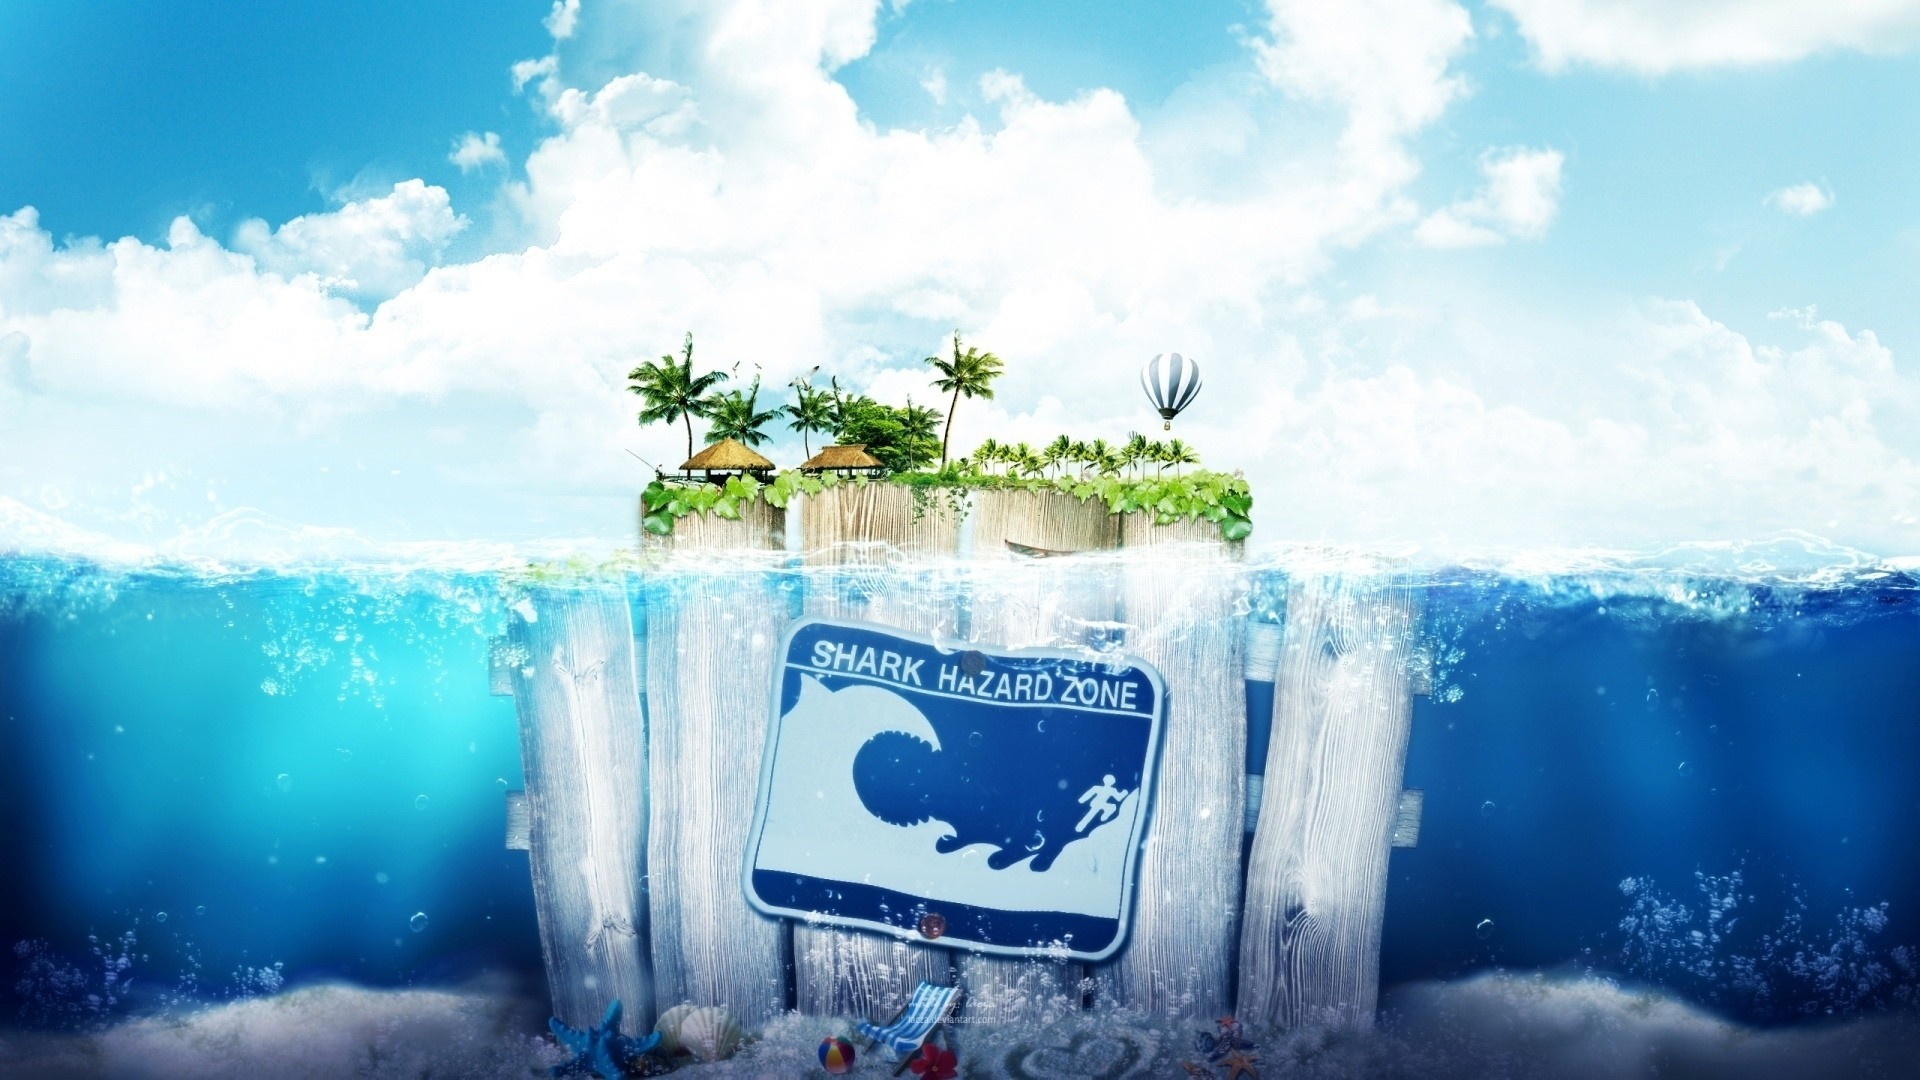 General 1920x1080 digital art fantasy art water sea underwater fence wood bubbles deck chairs palm trees island nature warning signs shark humor waves clouds hot air balloons house leaves starfish ball seashell sand